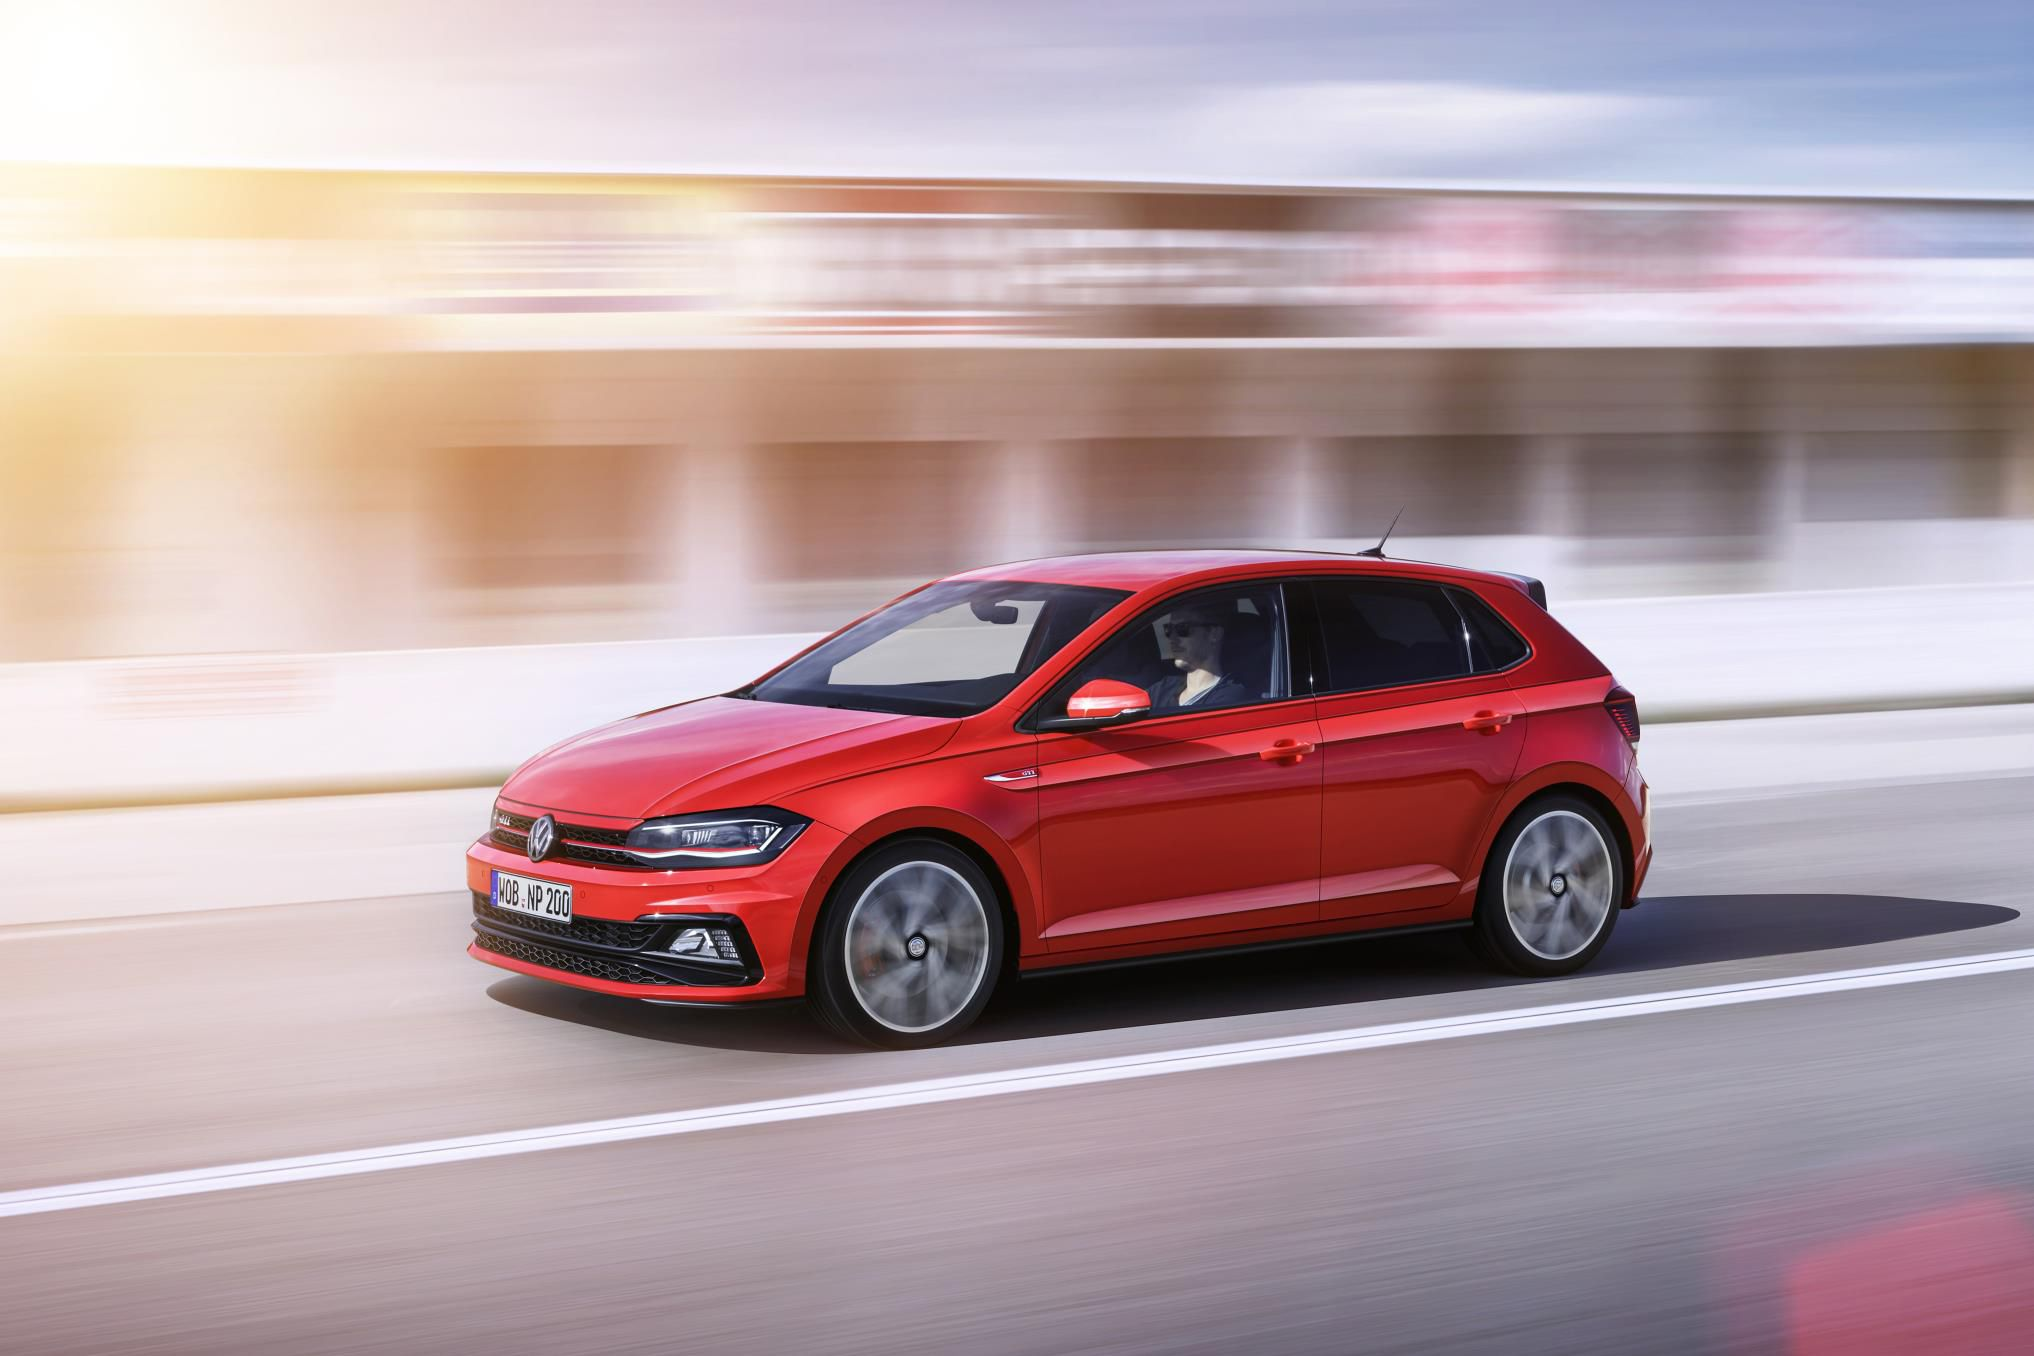 New Polo Gti in Red